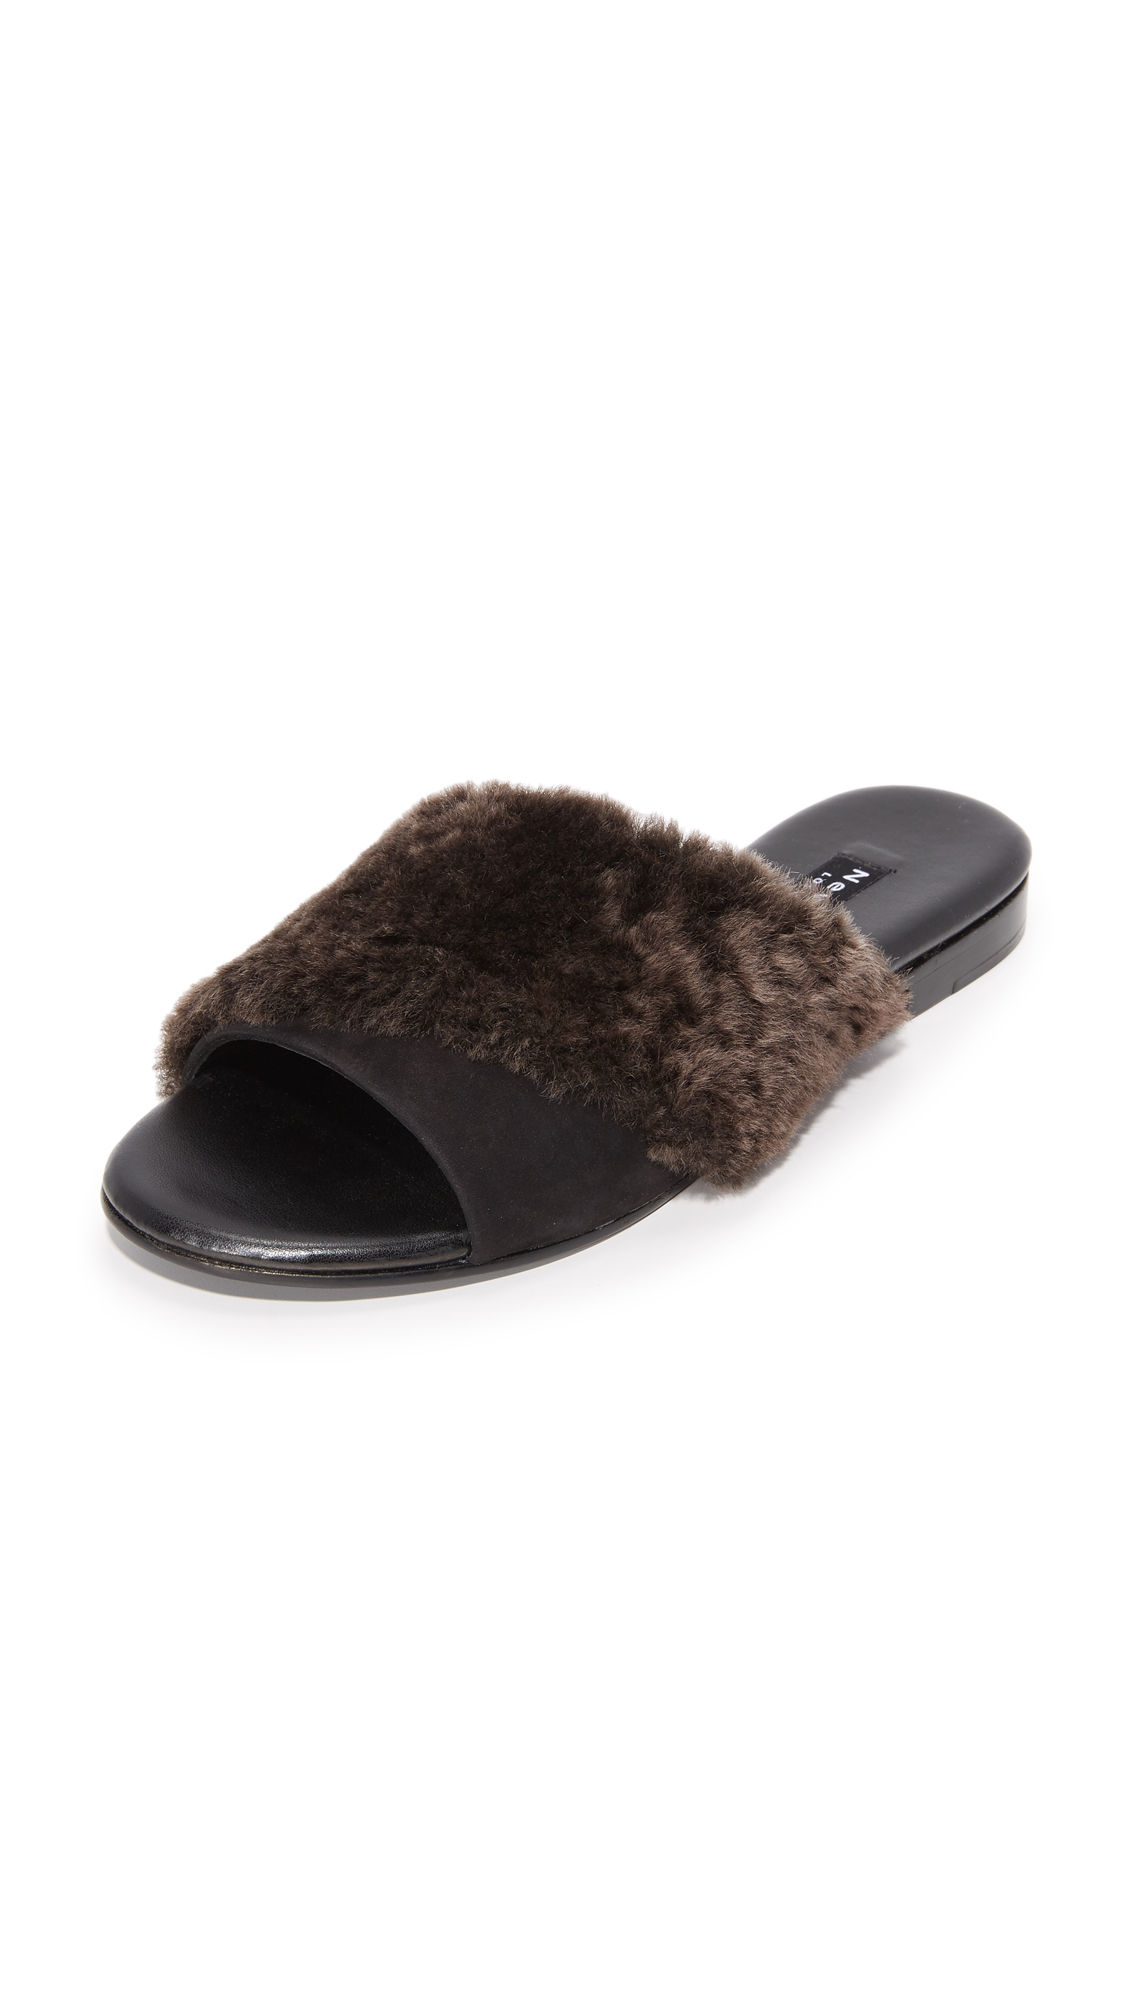 A plush shearling strap crisscrosses the suede vamp on these casual Newbark slide sandals. Low, stacked heel and leather sole. Fur: Dyed lamb shearling, from the USA. Leather: Calfskin. Made in the USA. This item cannot